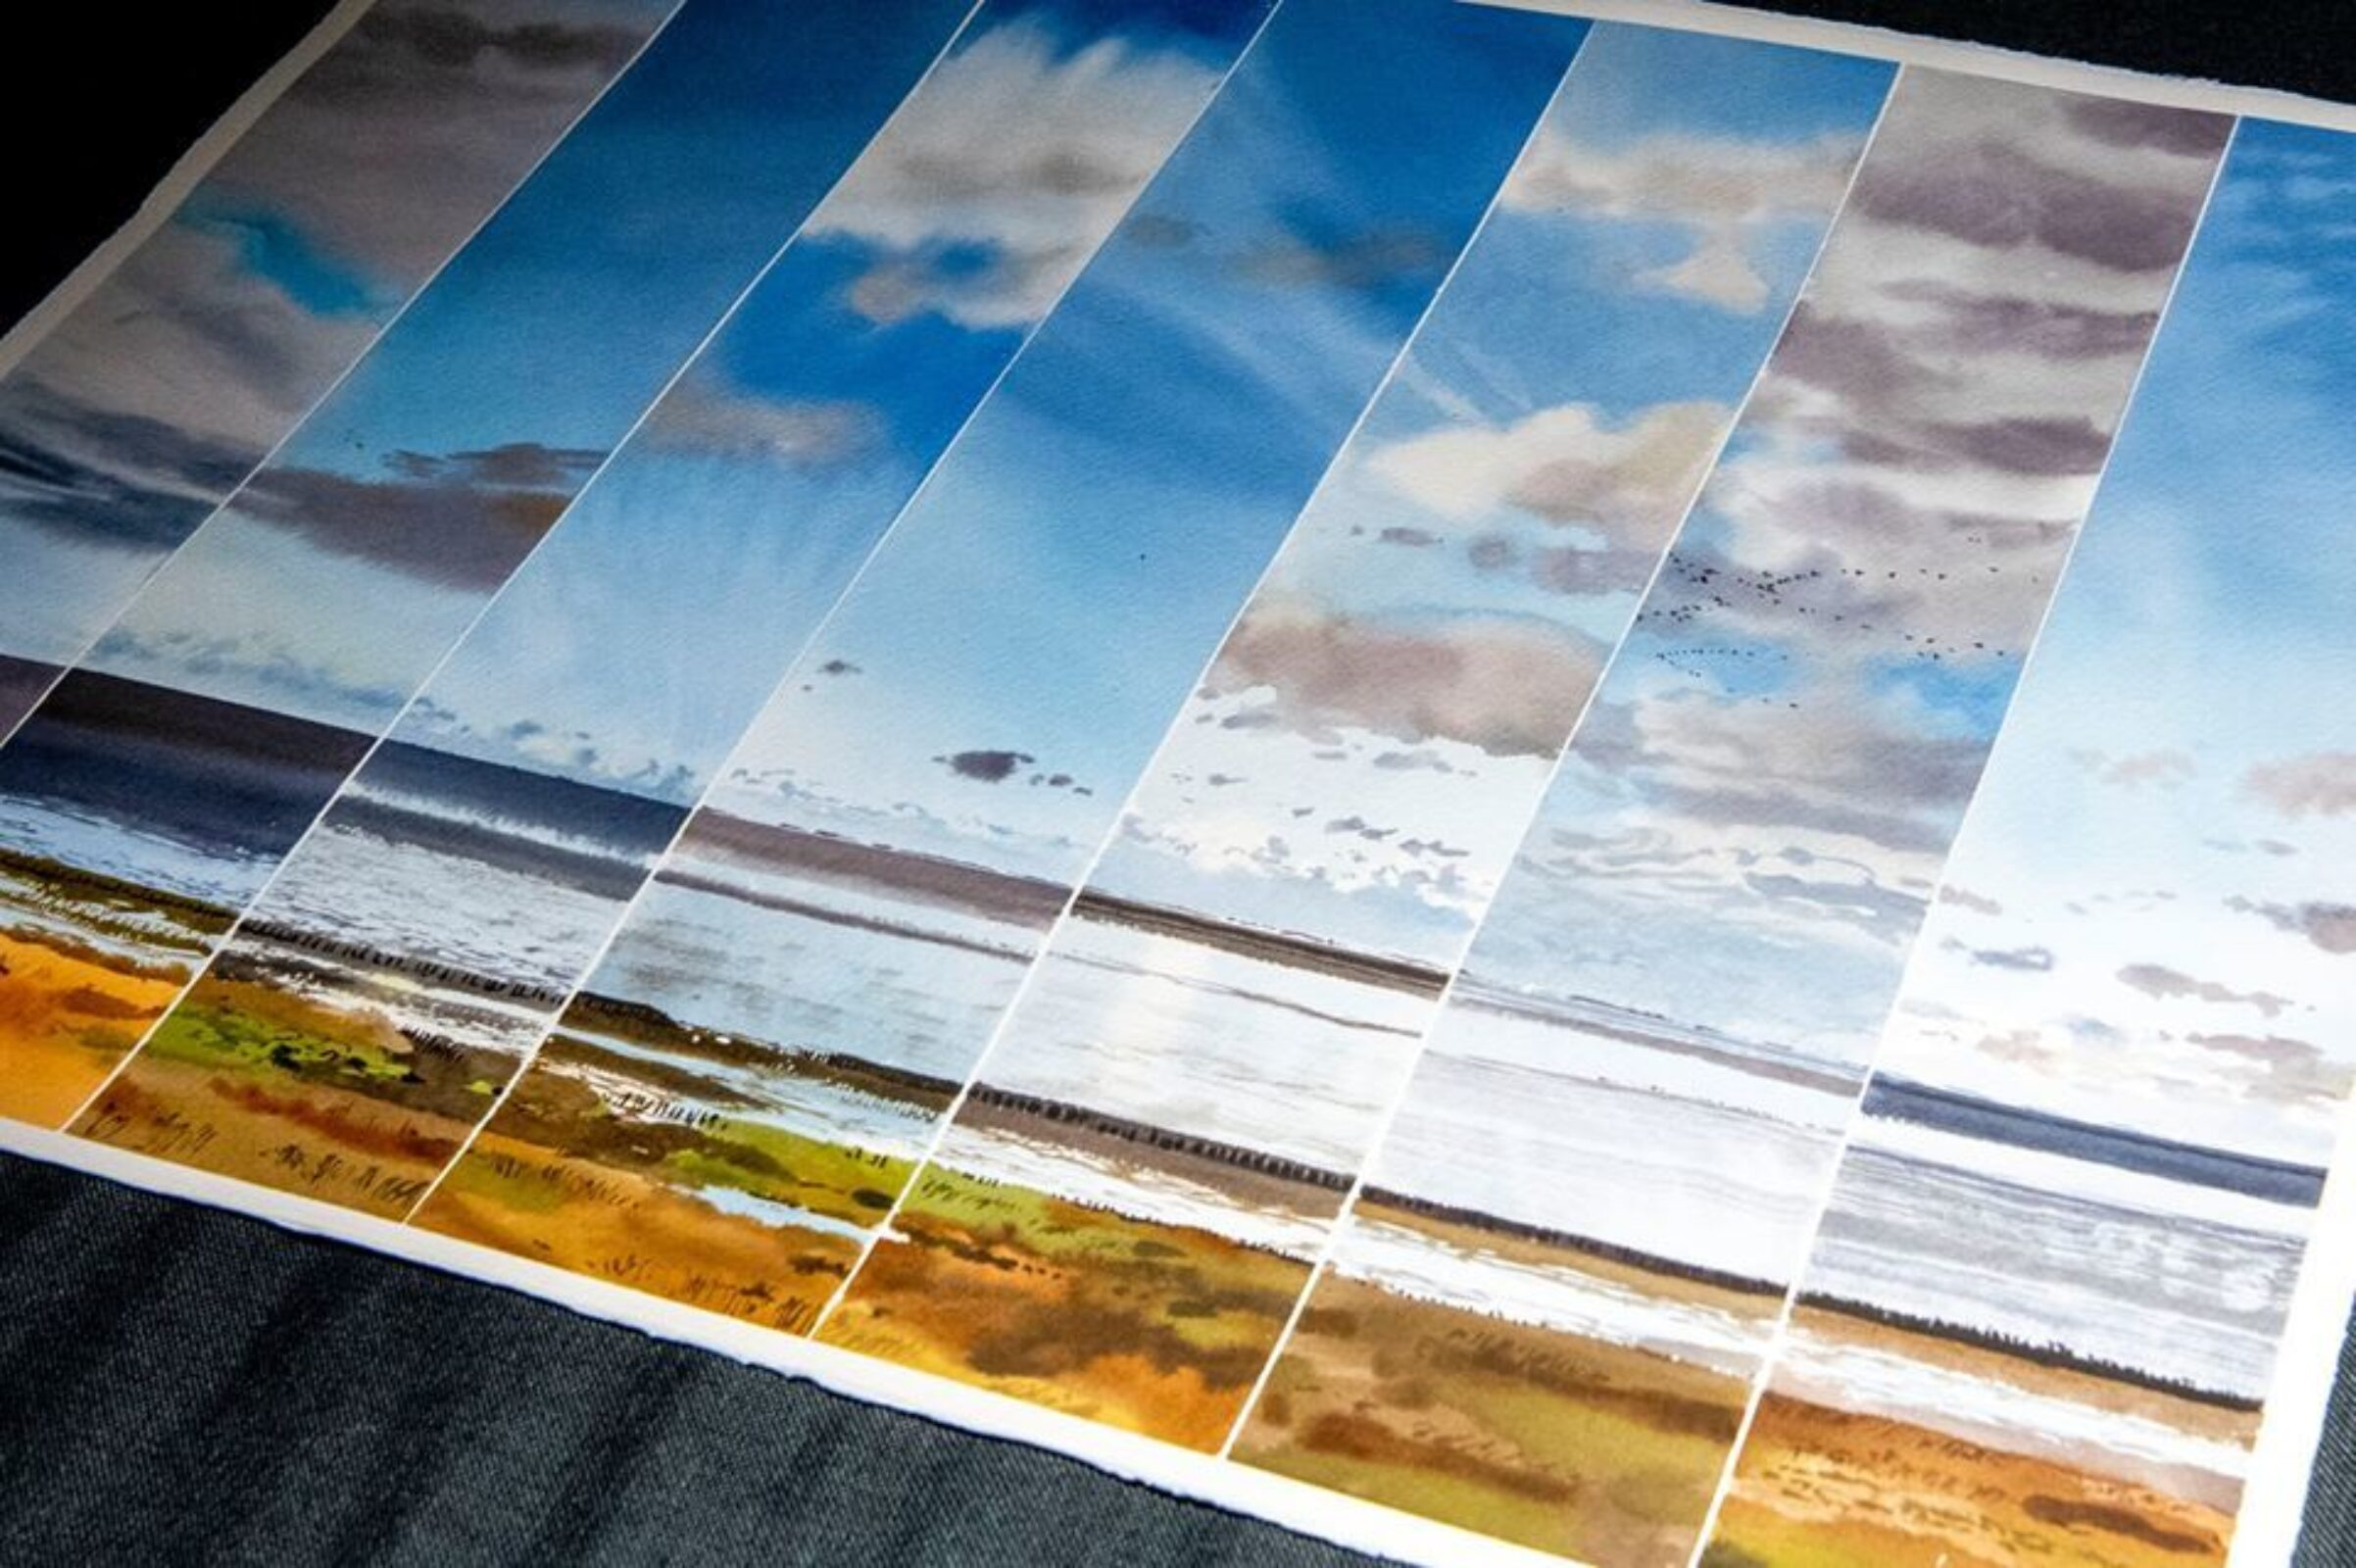 A timed painting made during the SWLA Waddensea project by Ben Woodhams © Ben Woodhams